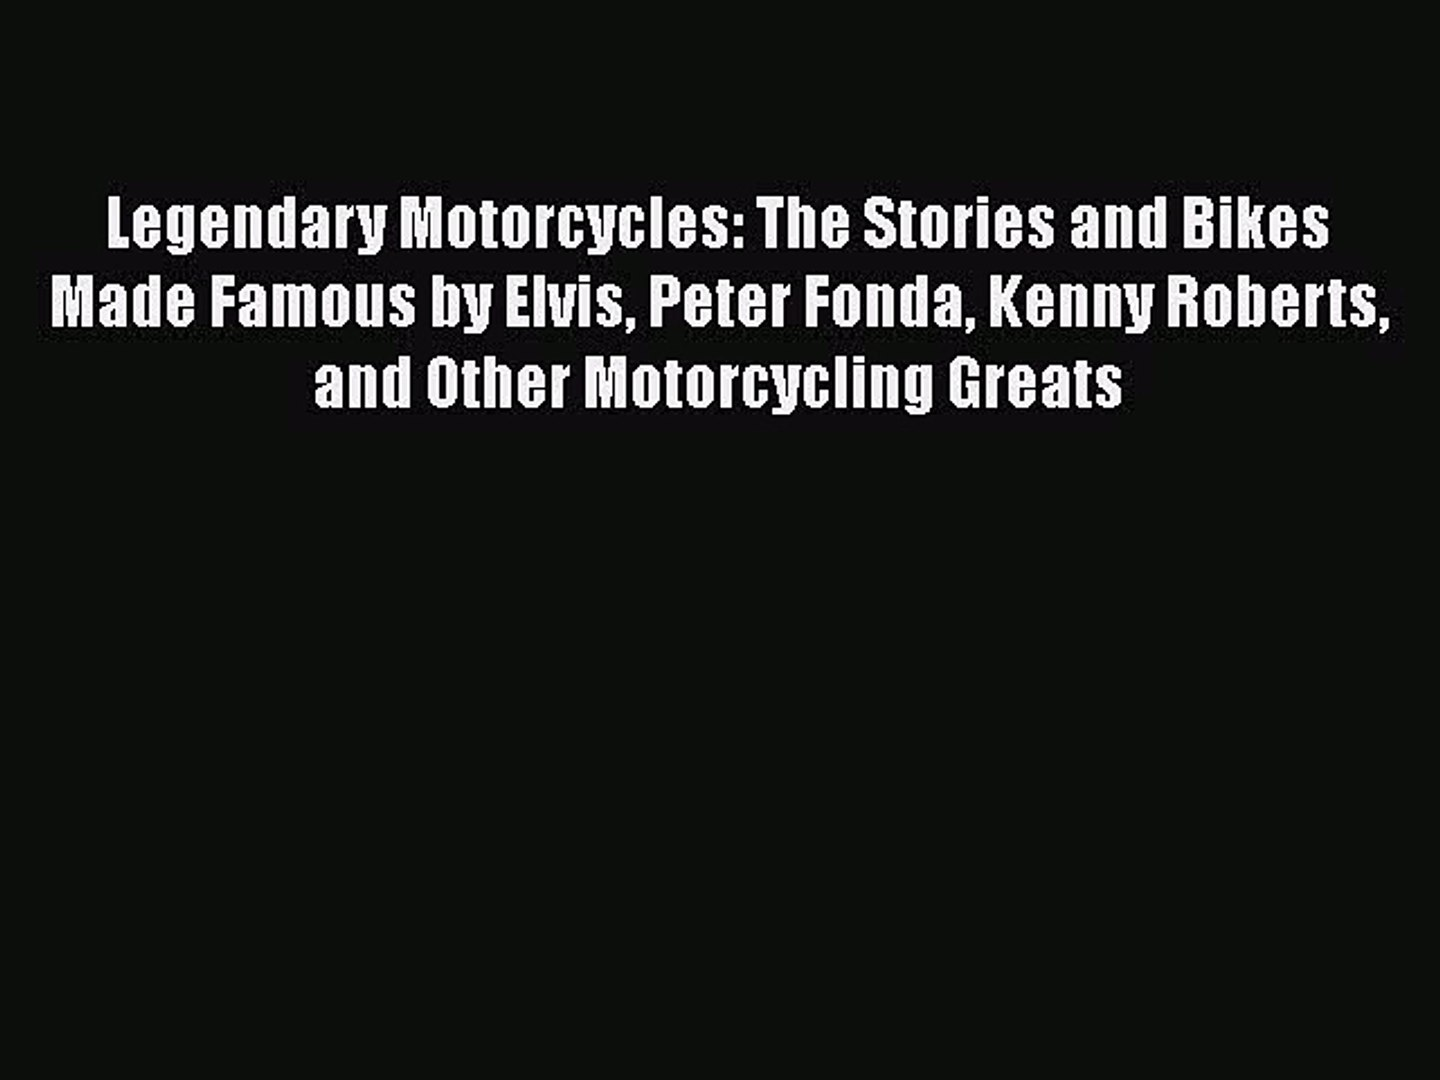 Download Legendary Motorcycles: The Stories and Bikes Made Famous by Elvis Peter Fonda Kenny